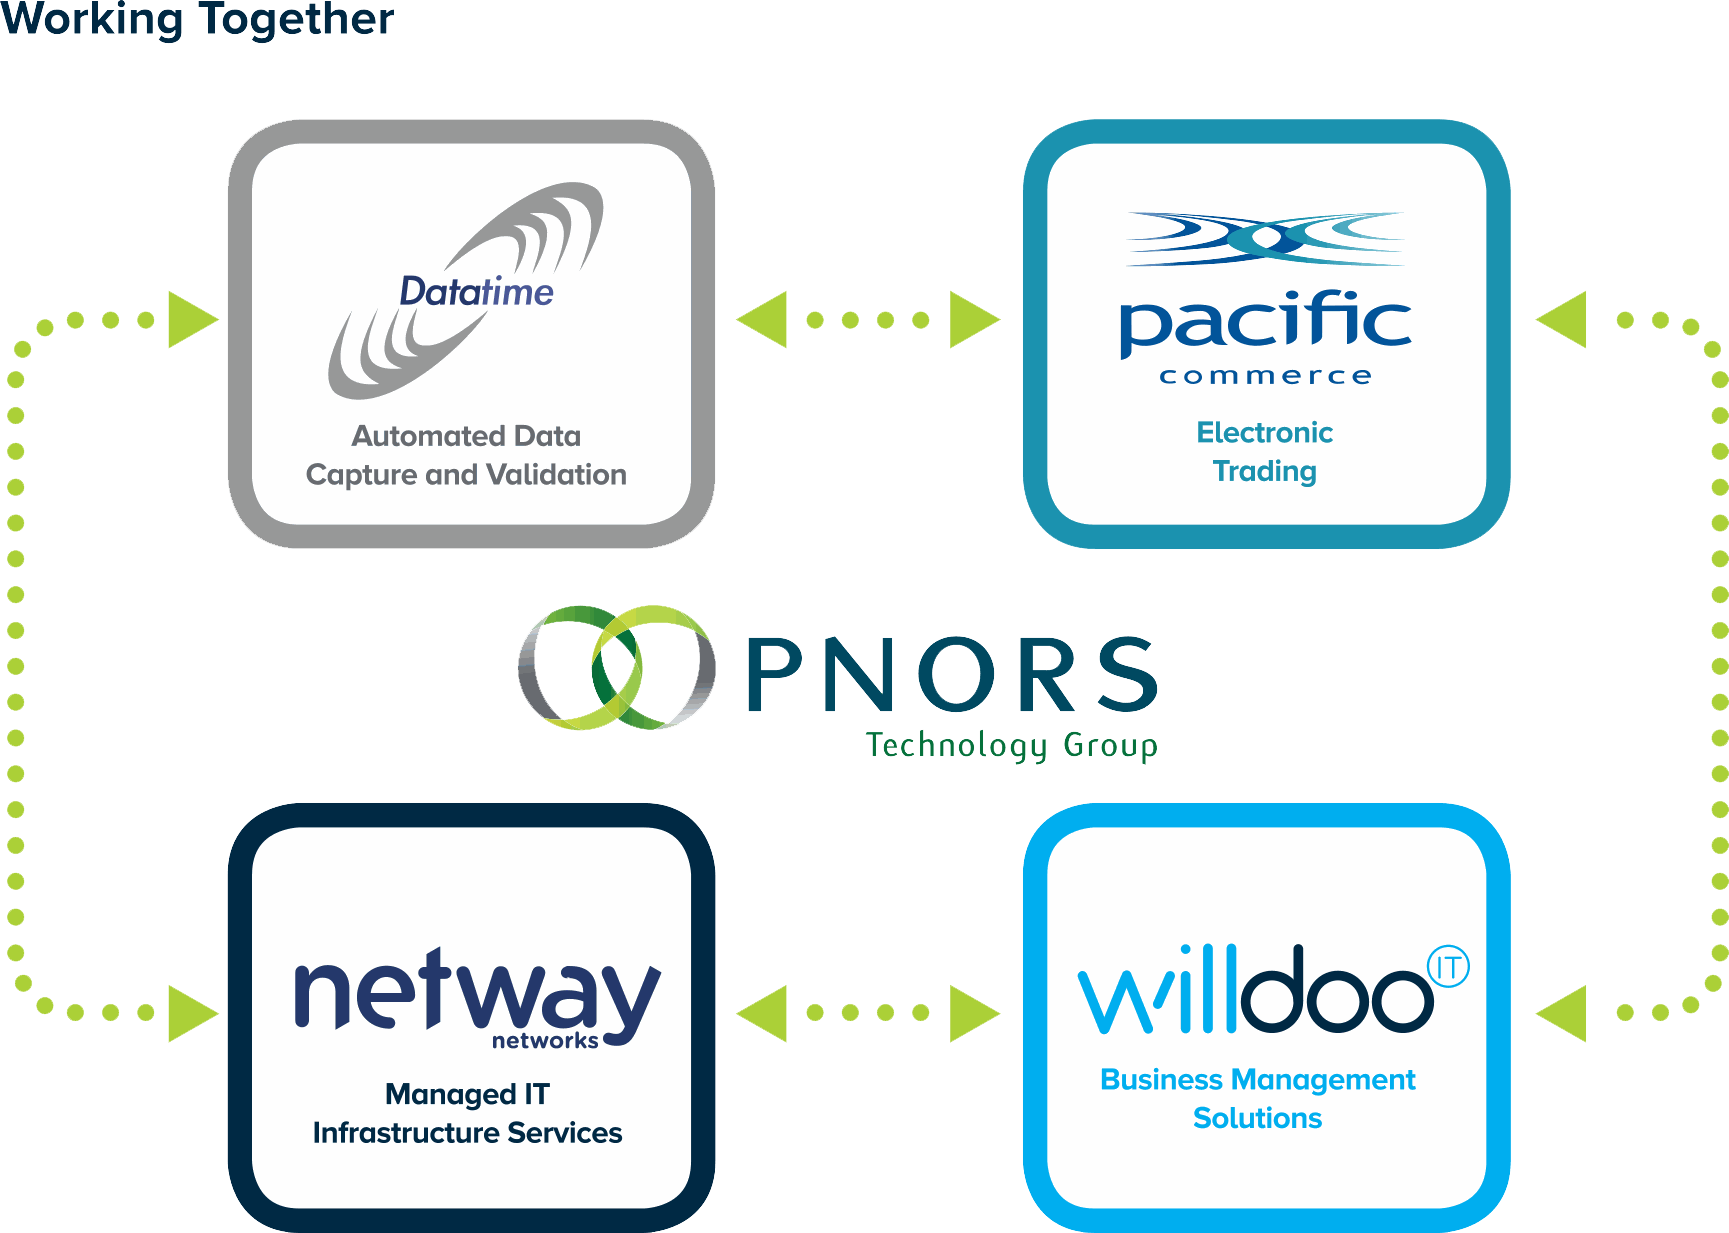 The PNORS Technology Group